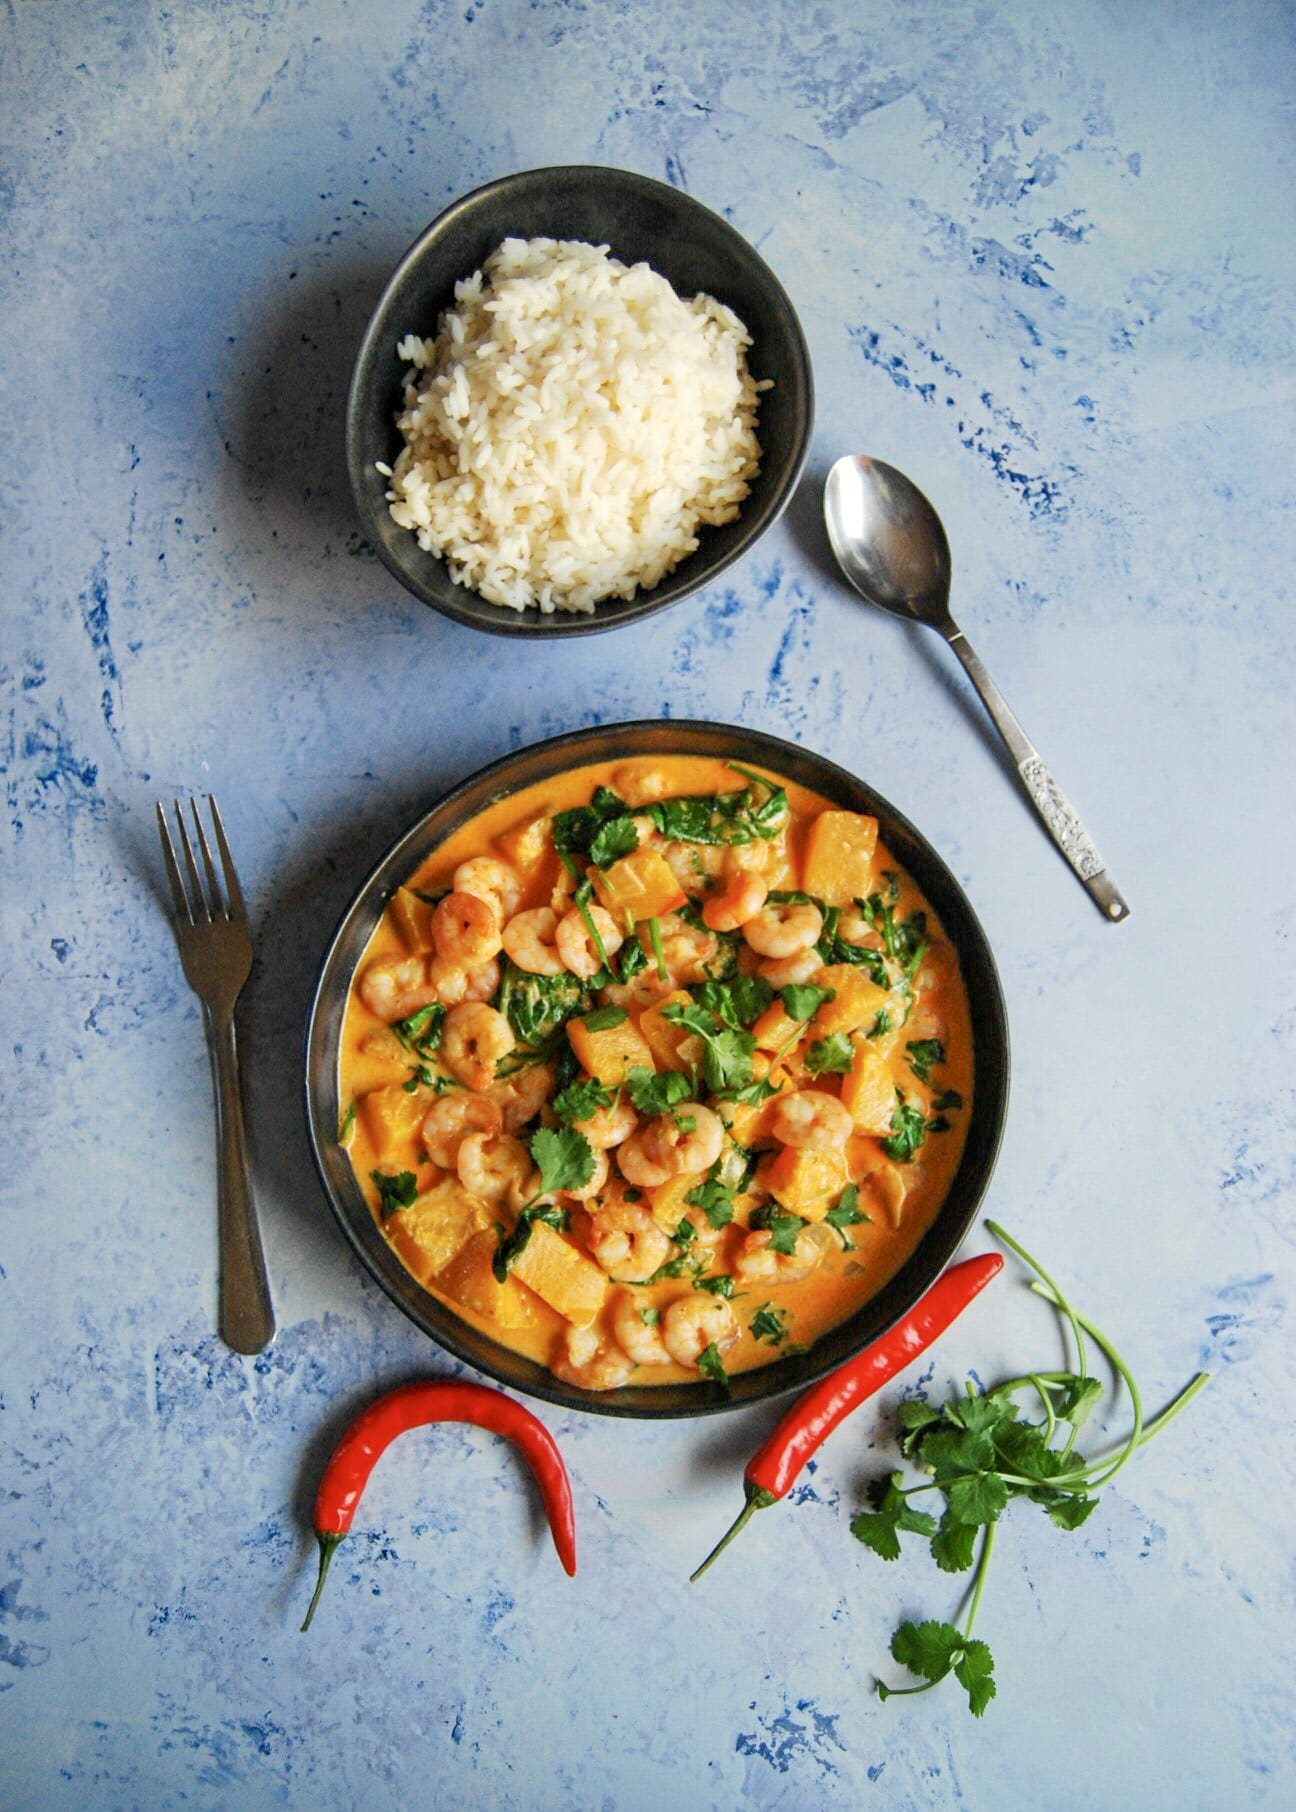 A flay lay photo - blue background with a bowl of prawn red Thai curry sprinkled with fresh chopped coriander.